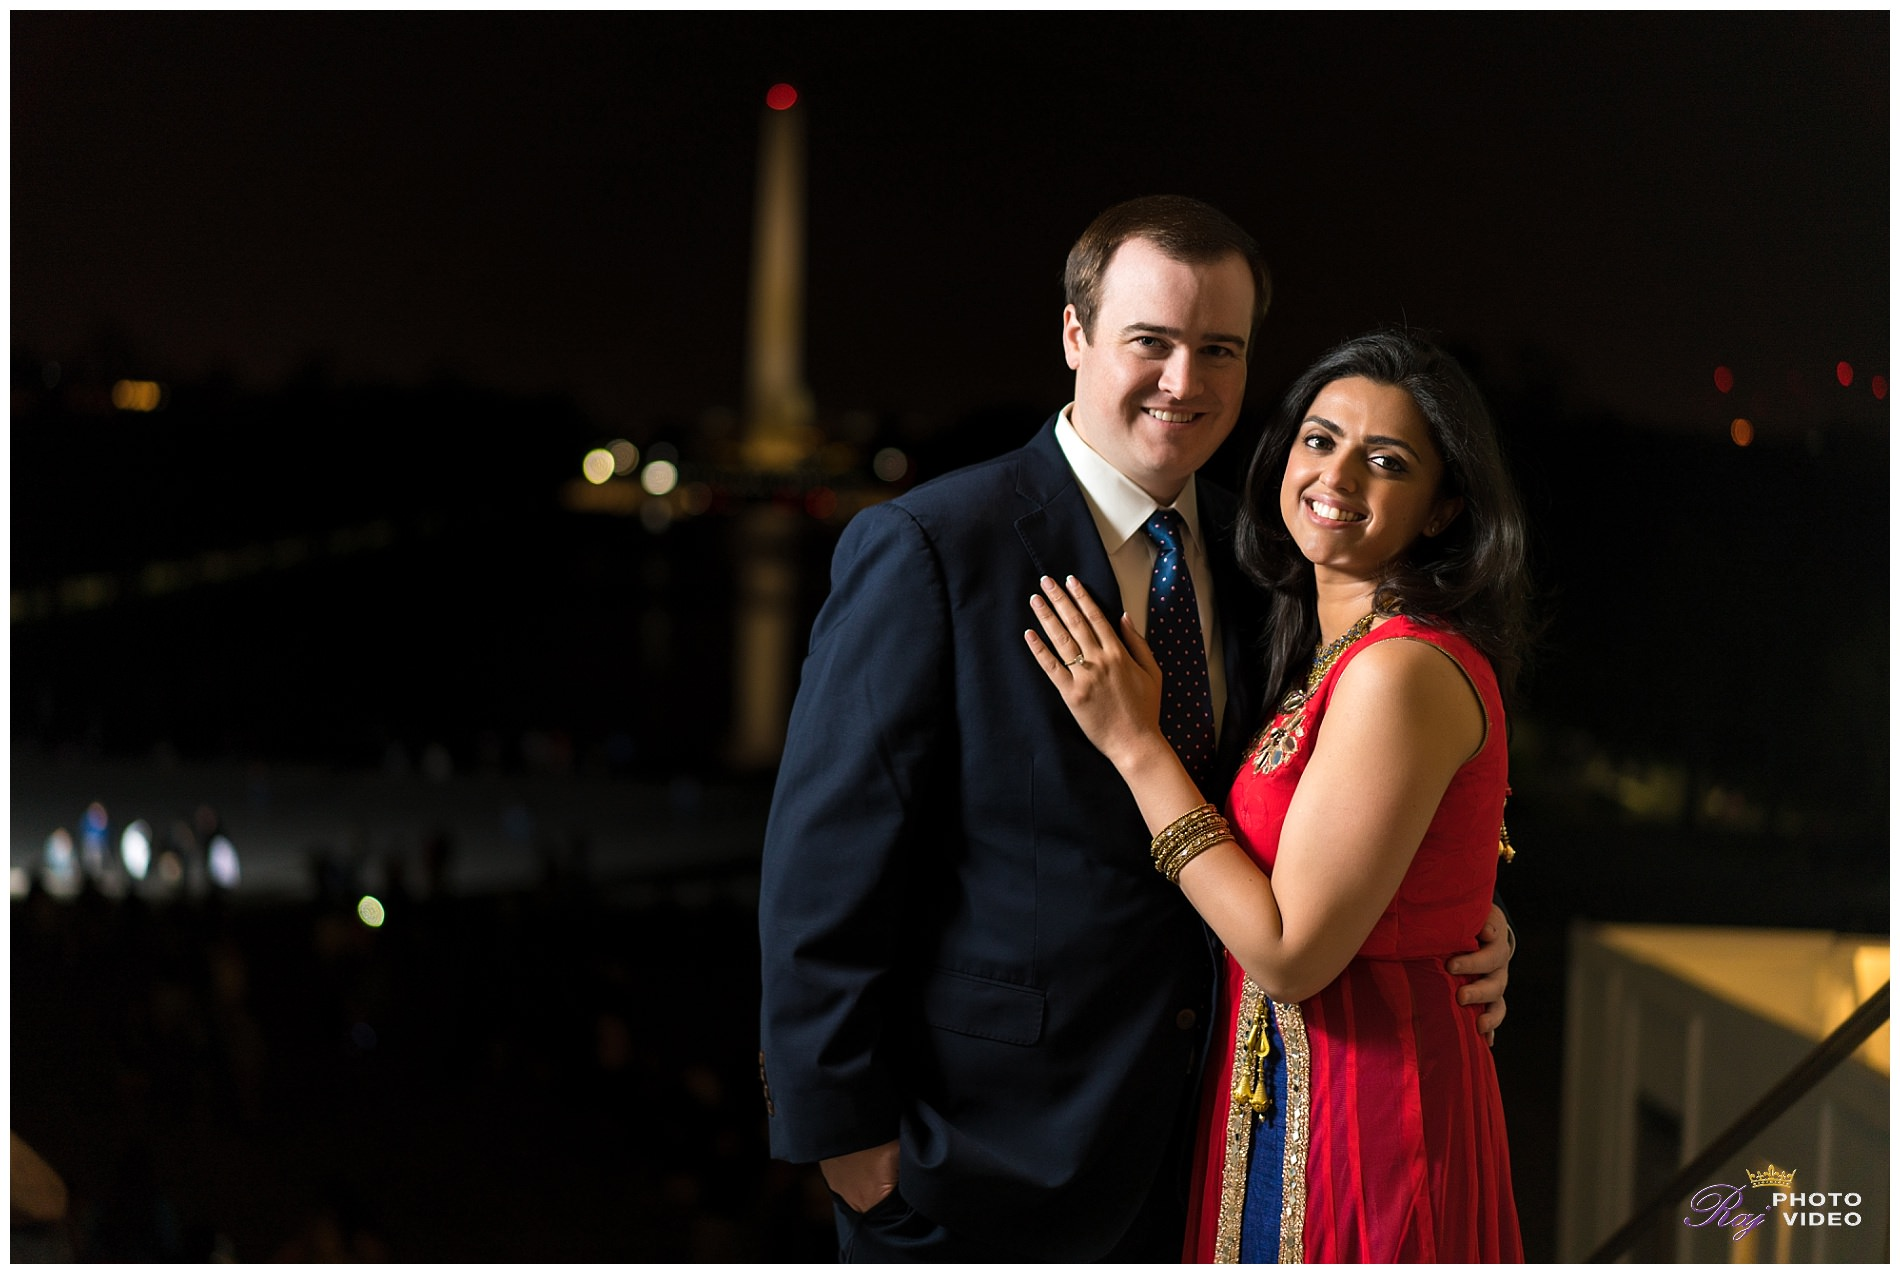 Lincoln-Memorial-Washington-DC-Engagement-Shoot-Aditi-Peter-1.jpg